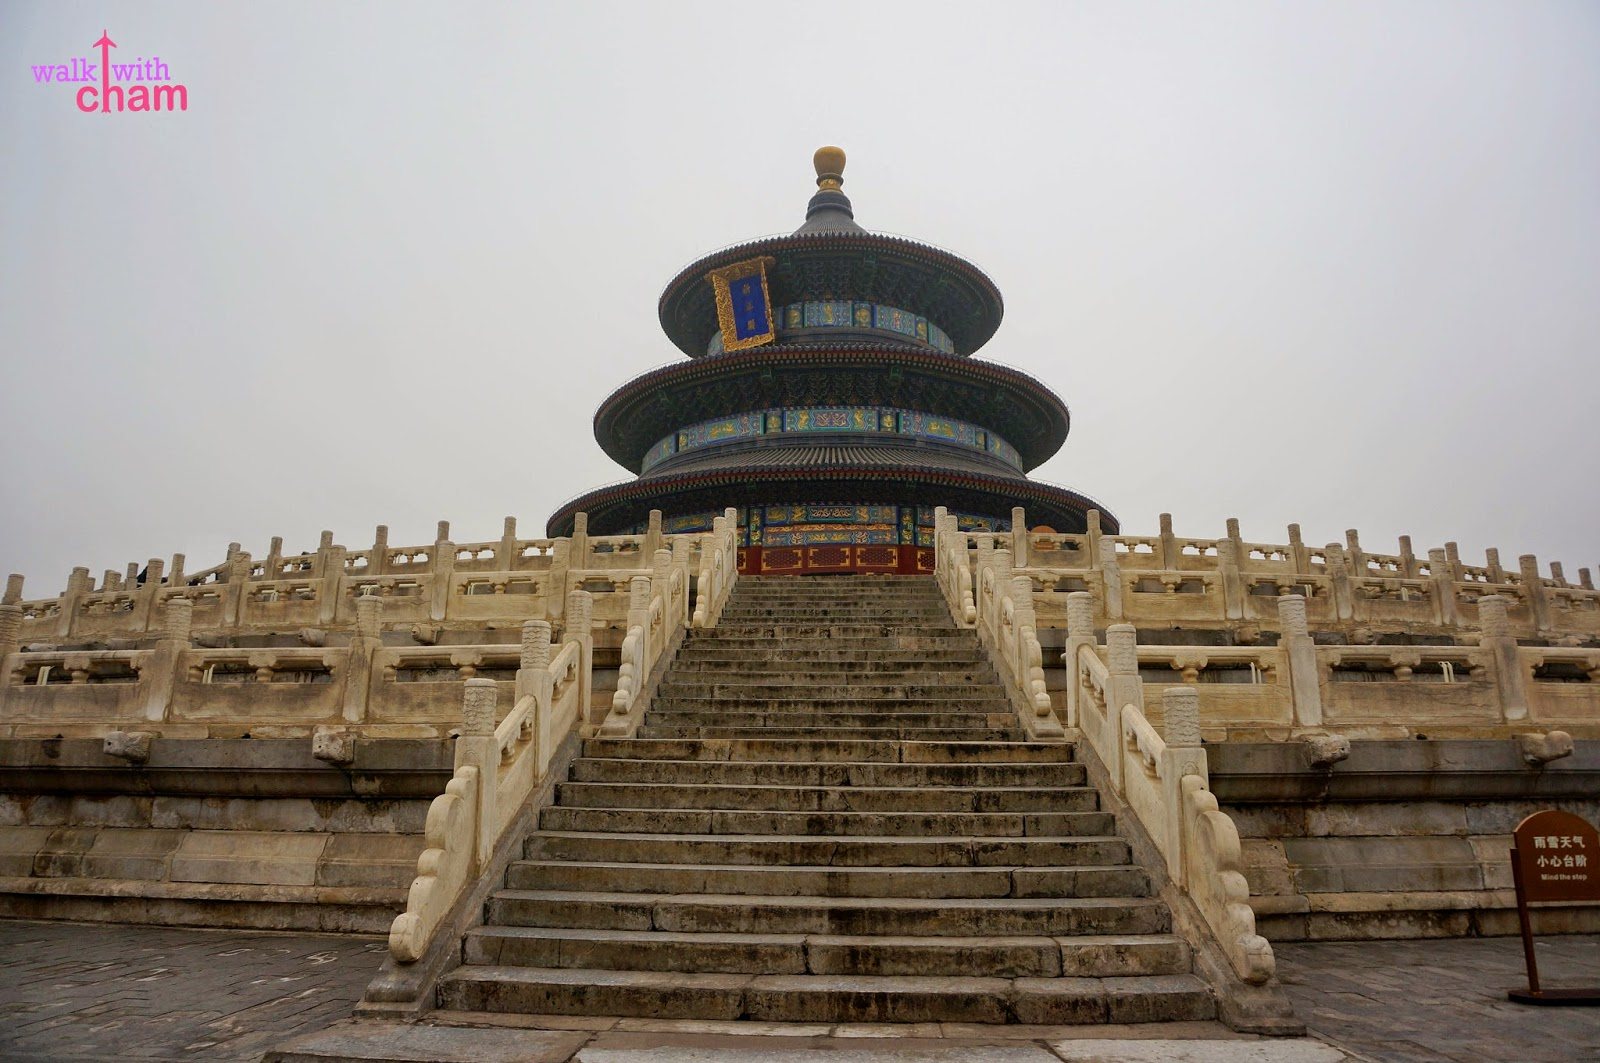 temple of heaven A tranquil oasis of peace and methodical confucian design in one of china's busiest urban landscapes, the 267-hectare temple of heaven park is absolutely unique.